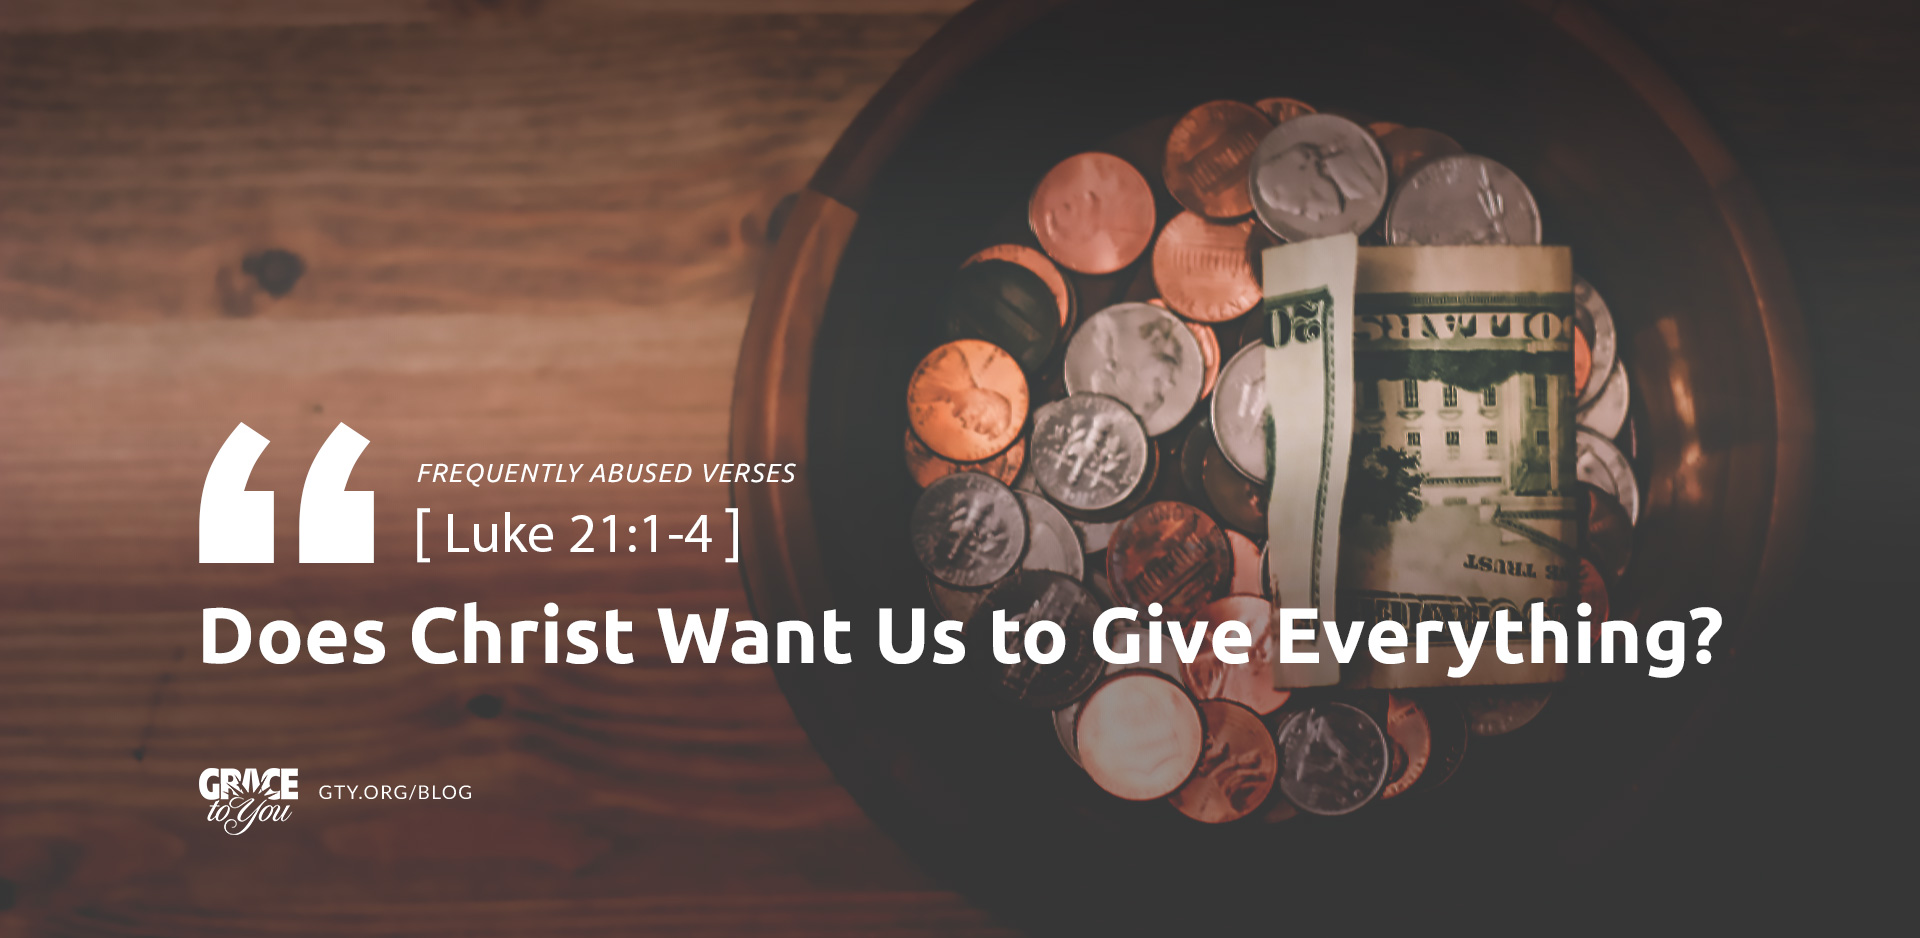 Does Christ Want Us to Give Everything?